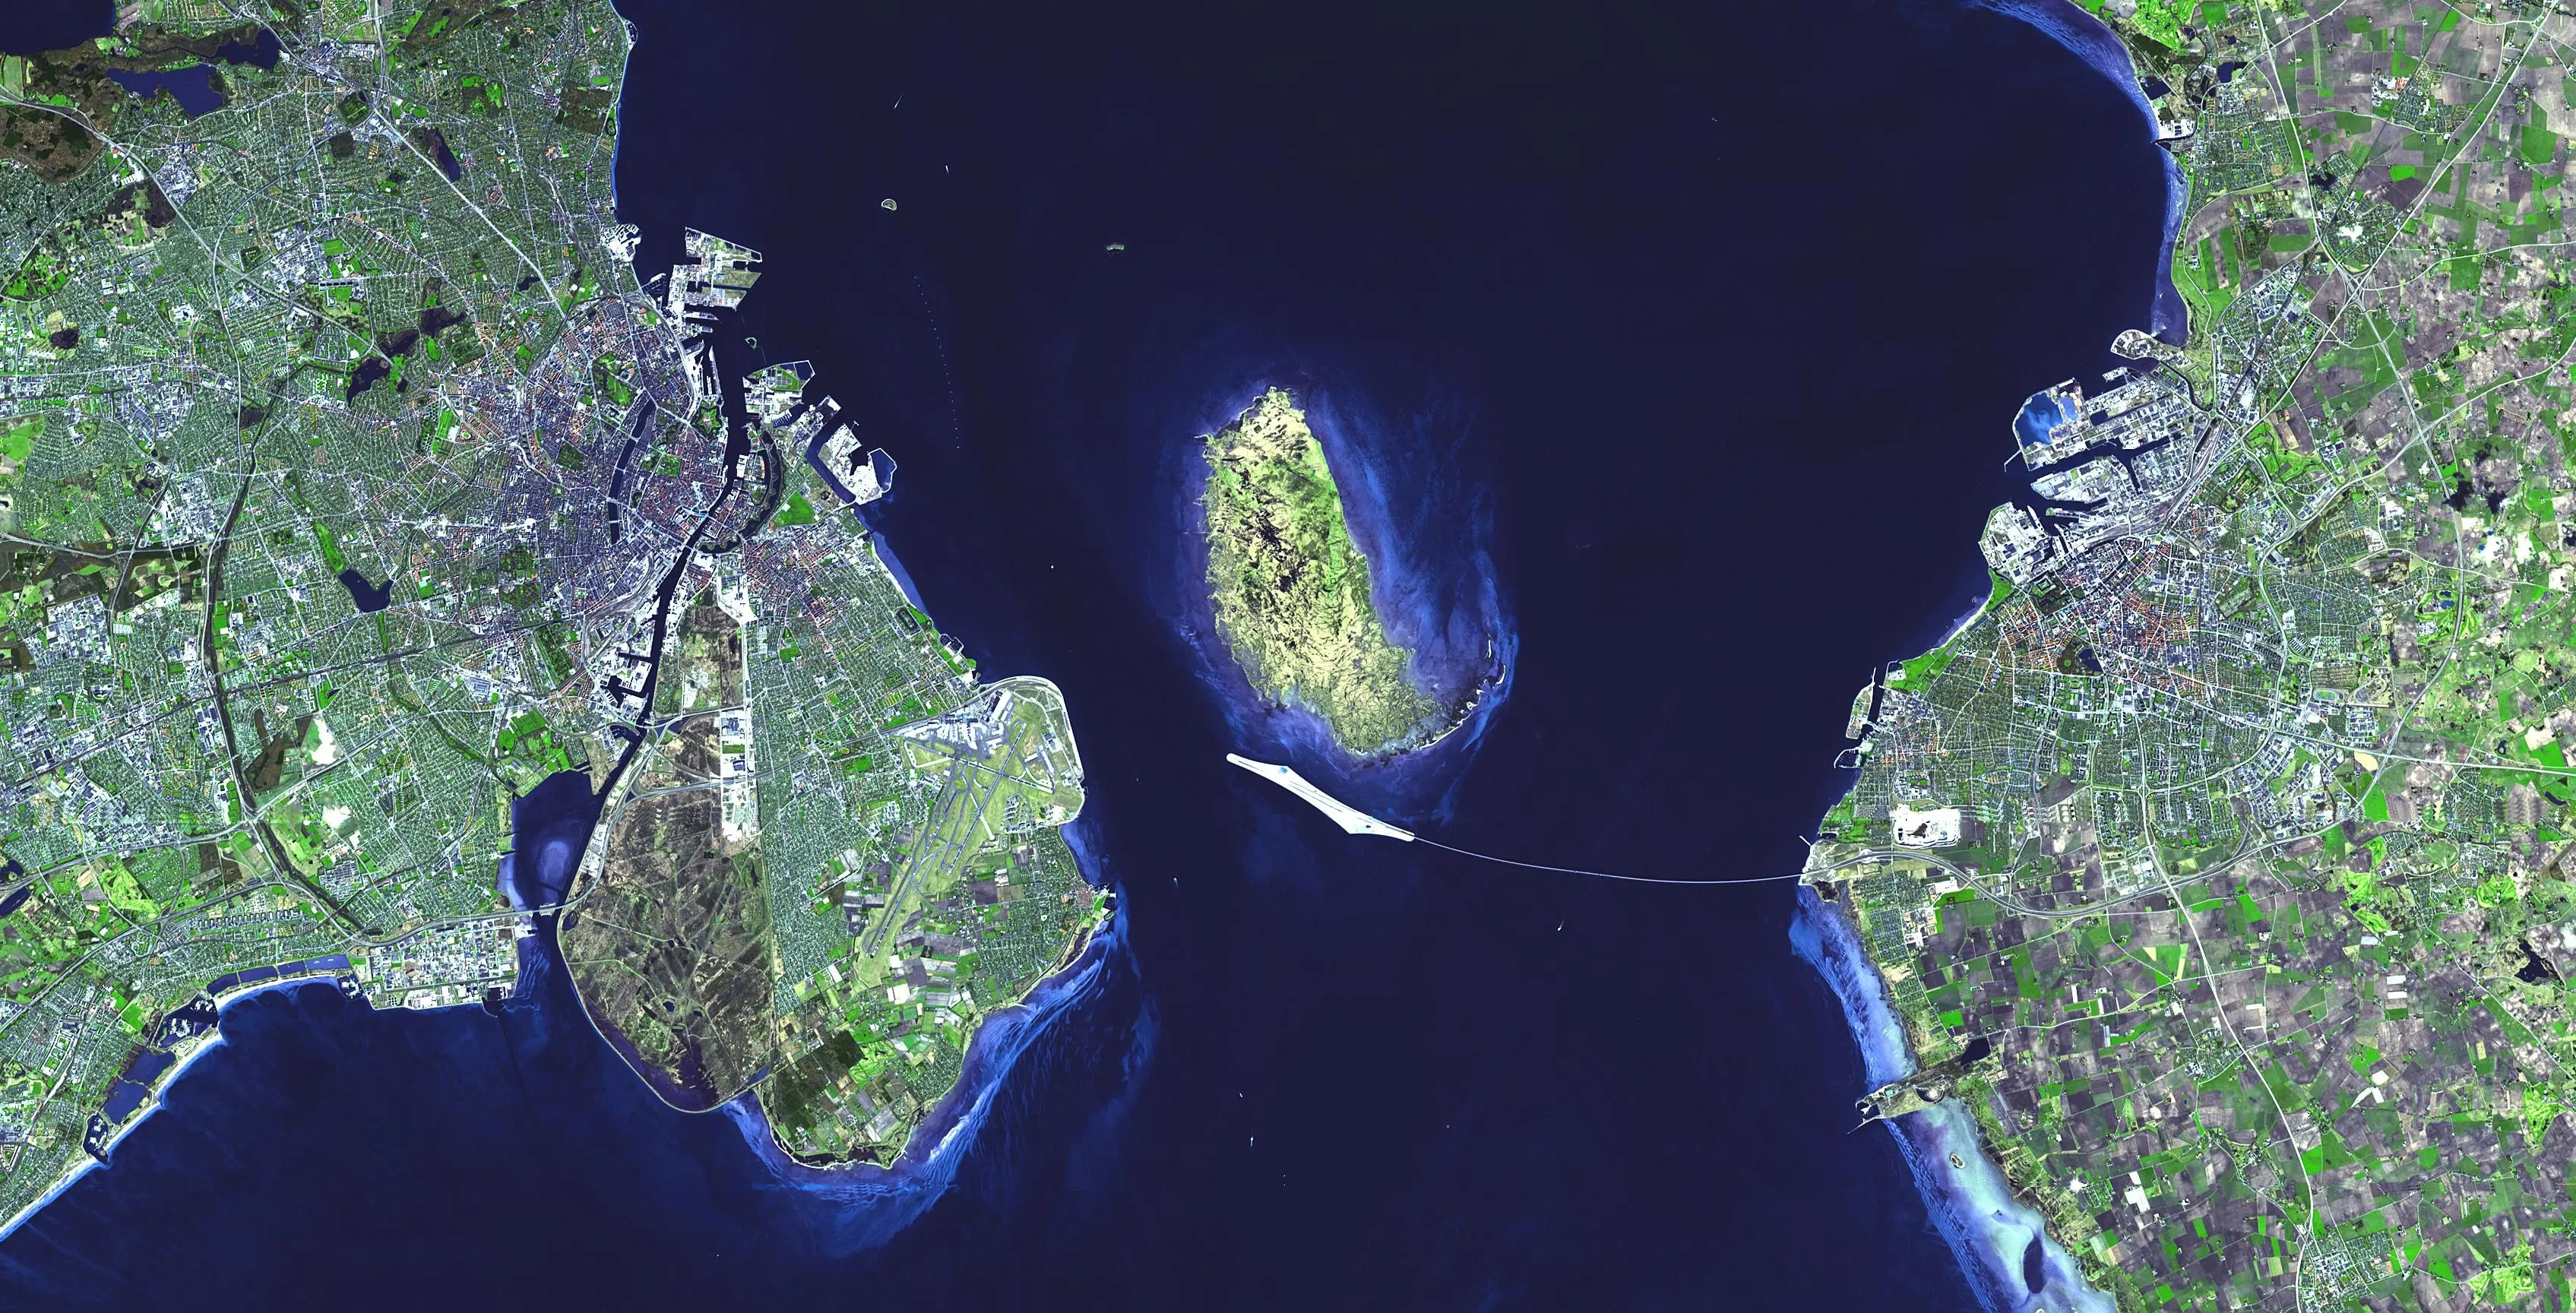 The 10-mile Oresund Bridge connects Sweden and Denmark. You can see the artificial island the countries constructed in the middle to make the trip.